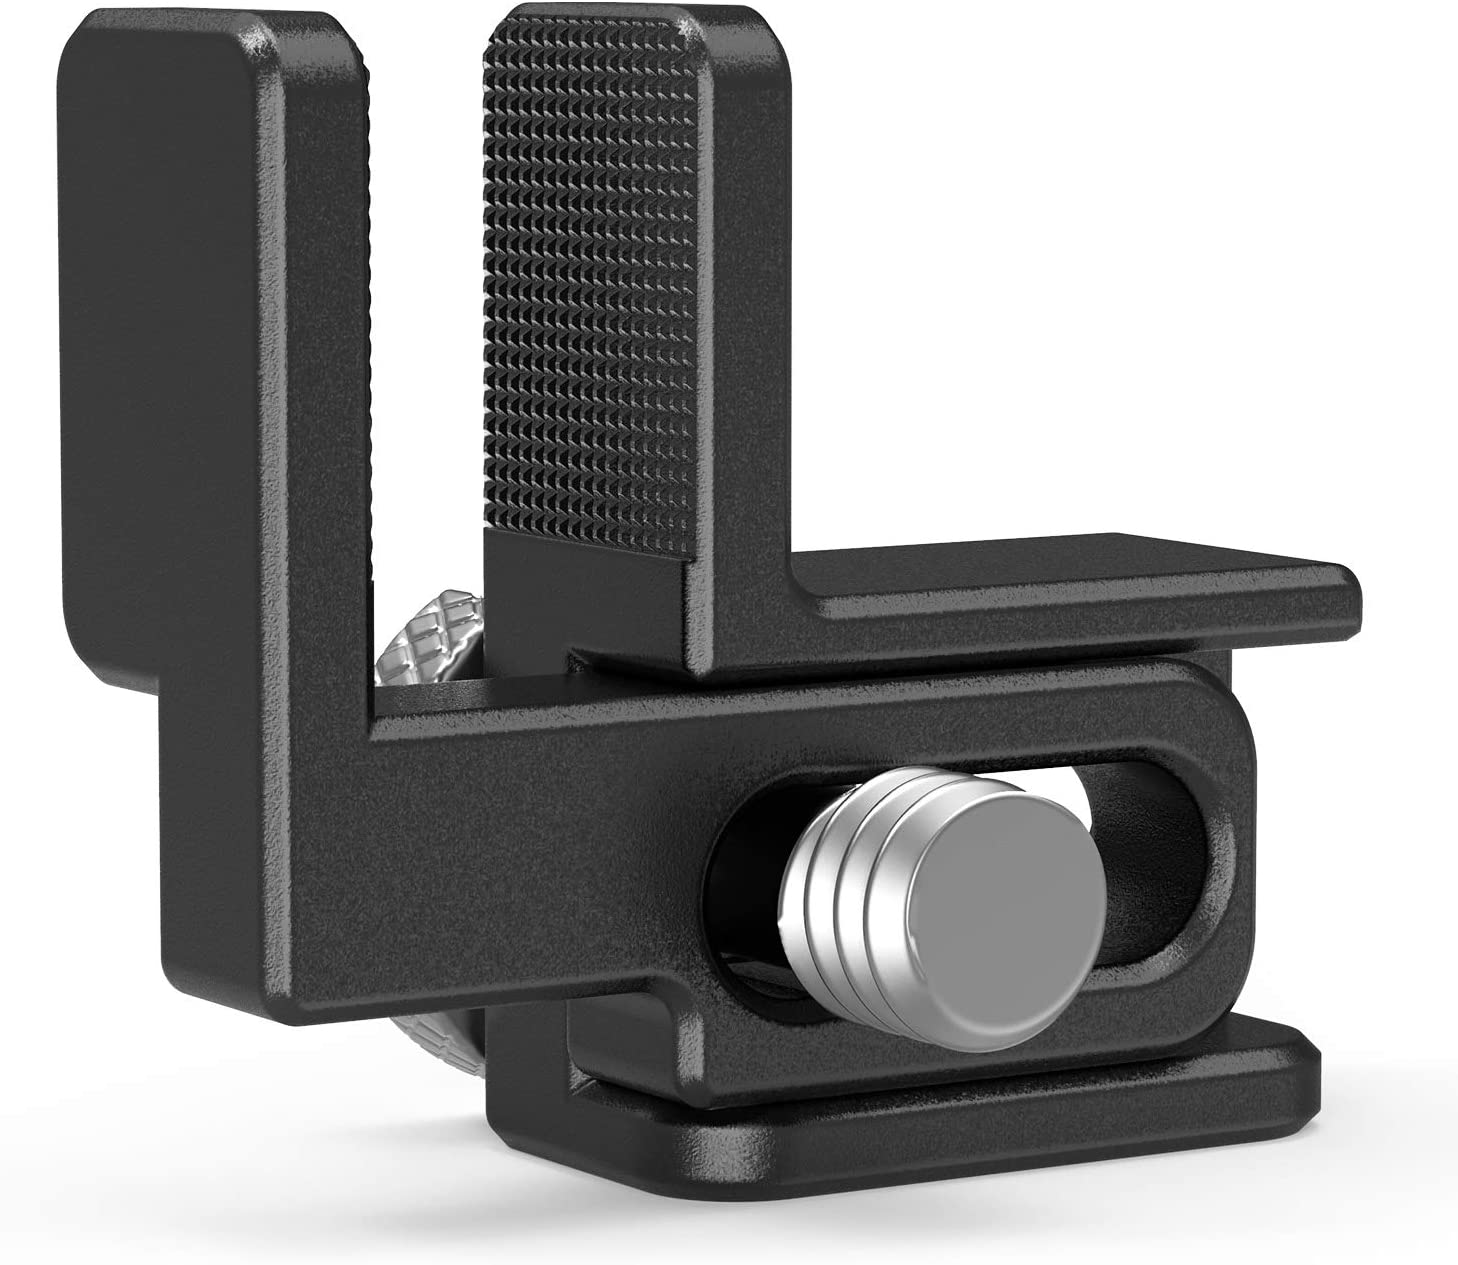 SmallRig HDMI Cable Clamp for SmallHD Focus Lightweight 2101